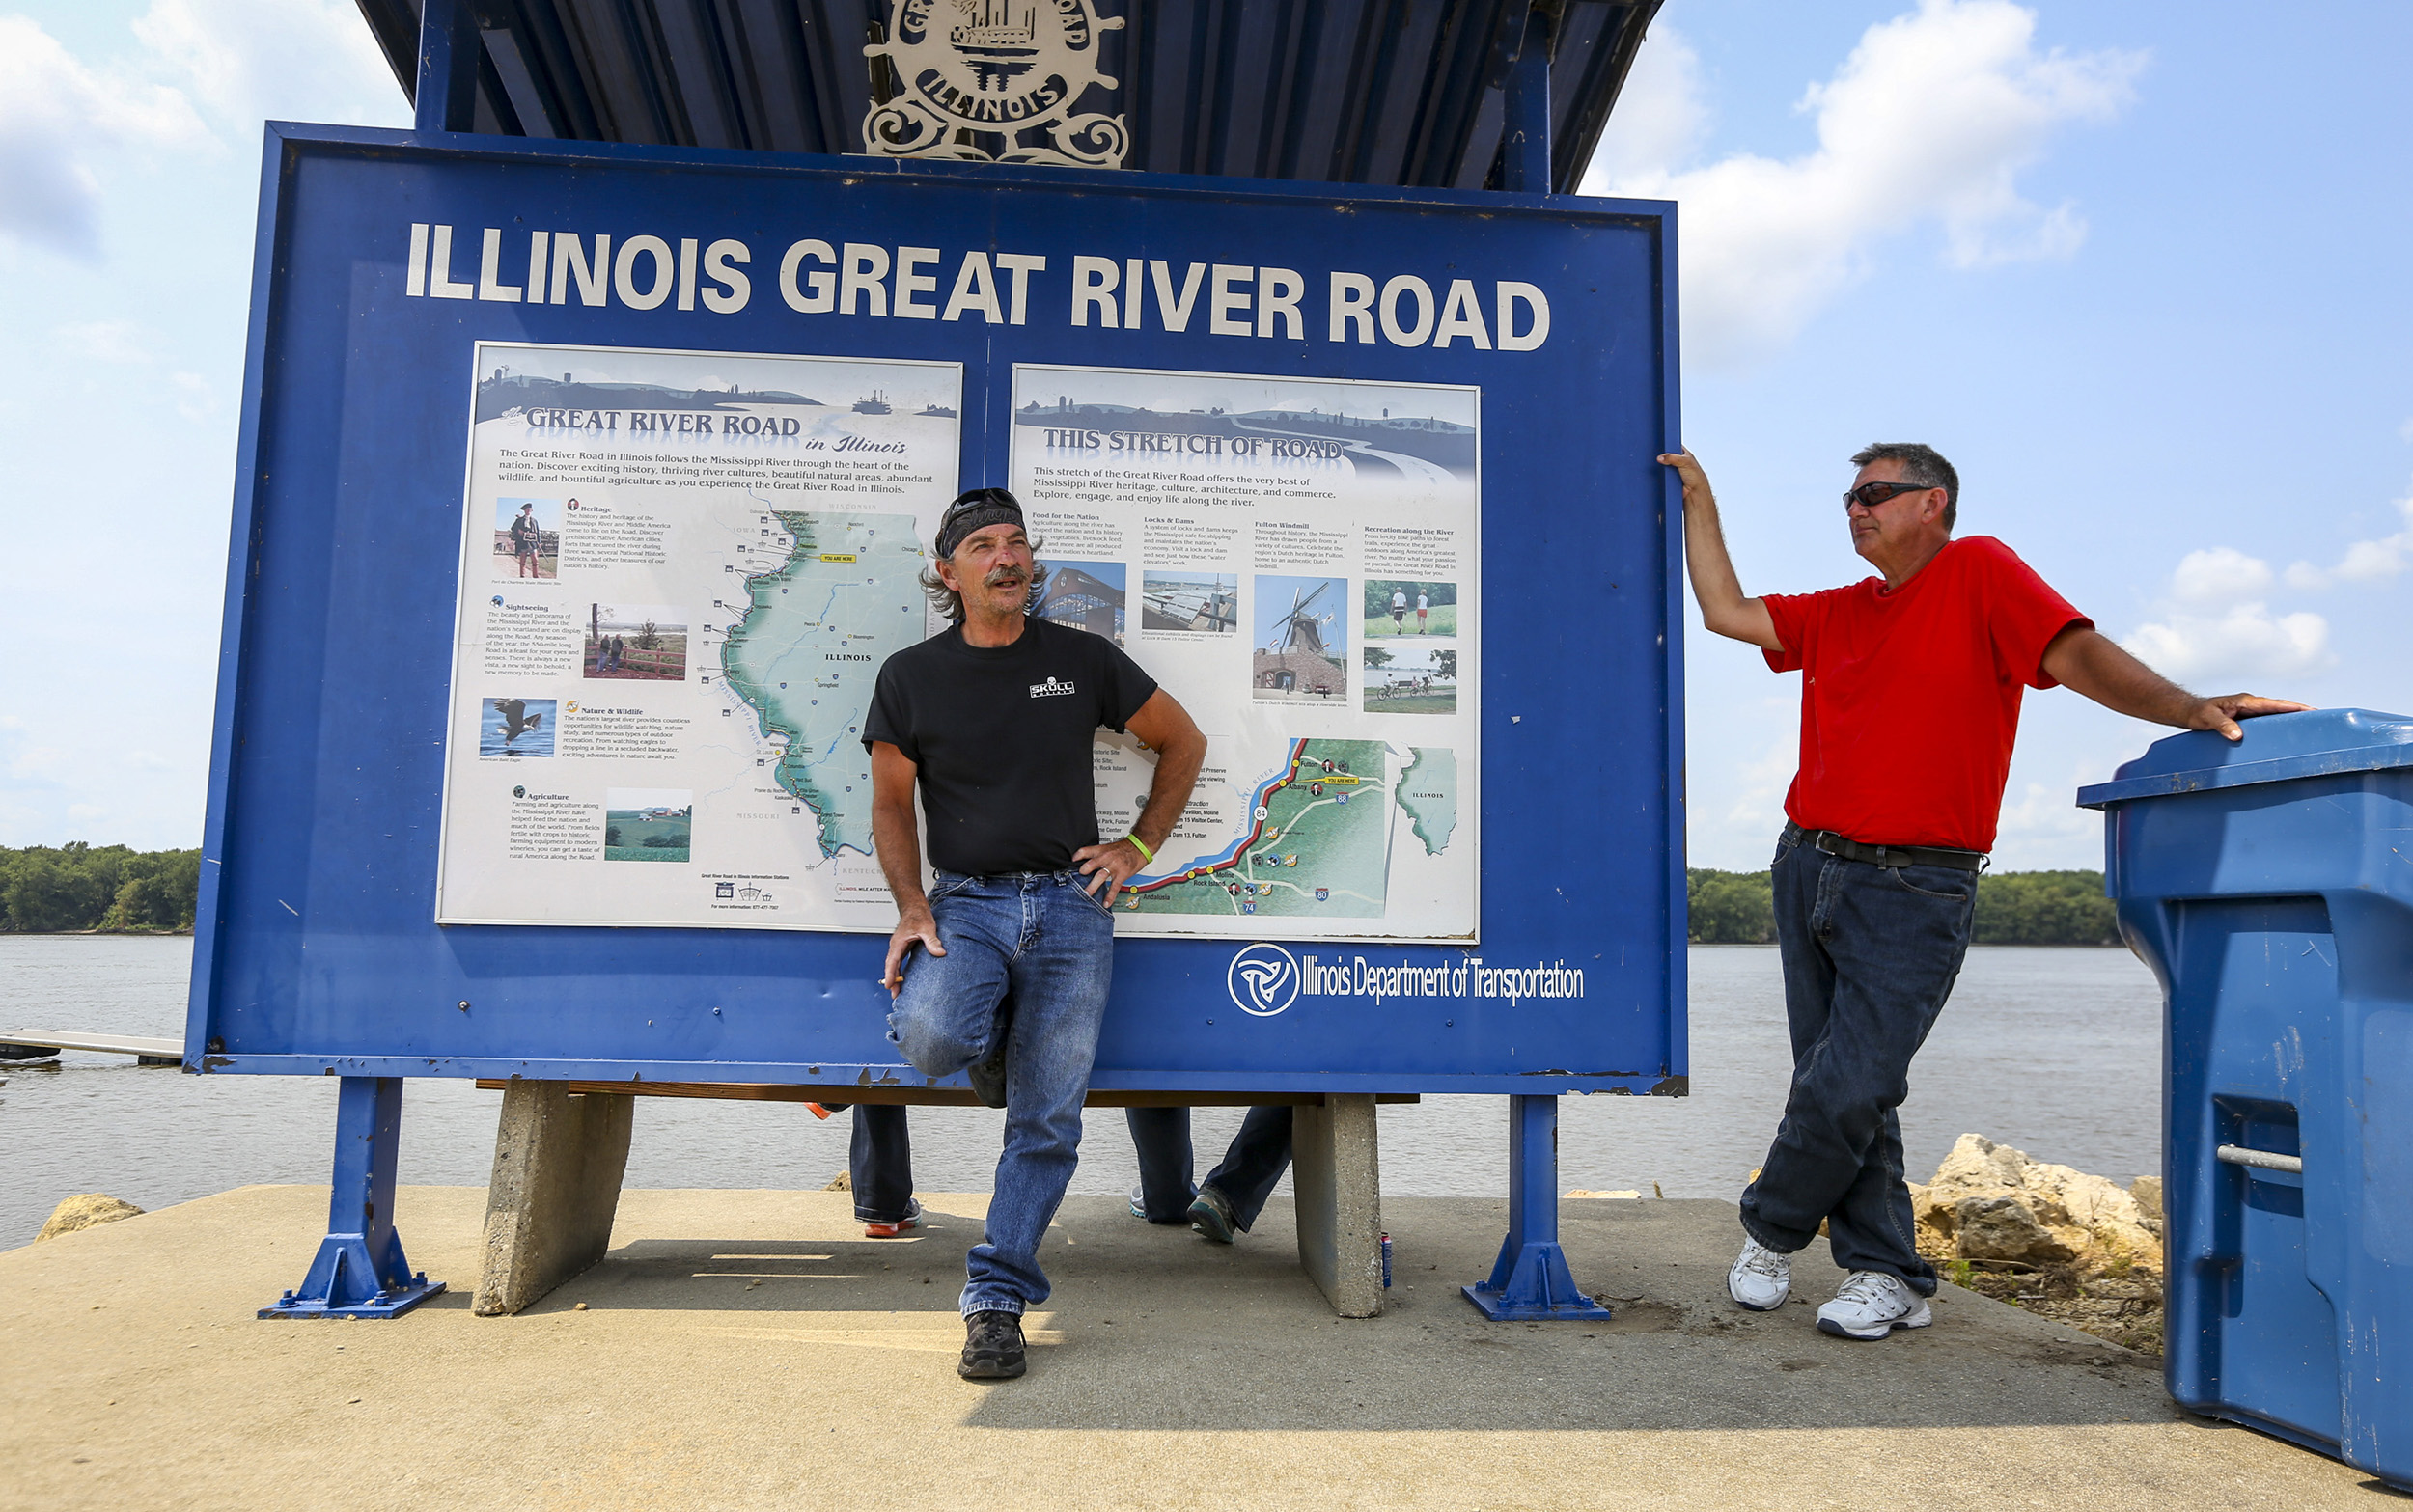 Ken Streitmatter, left and Marty Cantwell of Toulon take a rest together at the Albany boat landing in Albany, Illinois, Wednesday, August 2, 2017. The two couples had spent the last five days riding the Illinois Great River Road and were on their way home. They plan a motorcycle trip each summer and picked the road this summer after nearly a decade riding together.